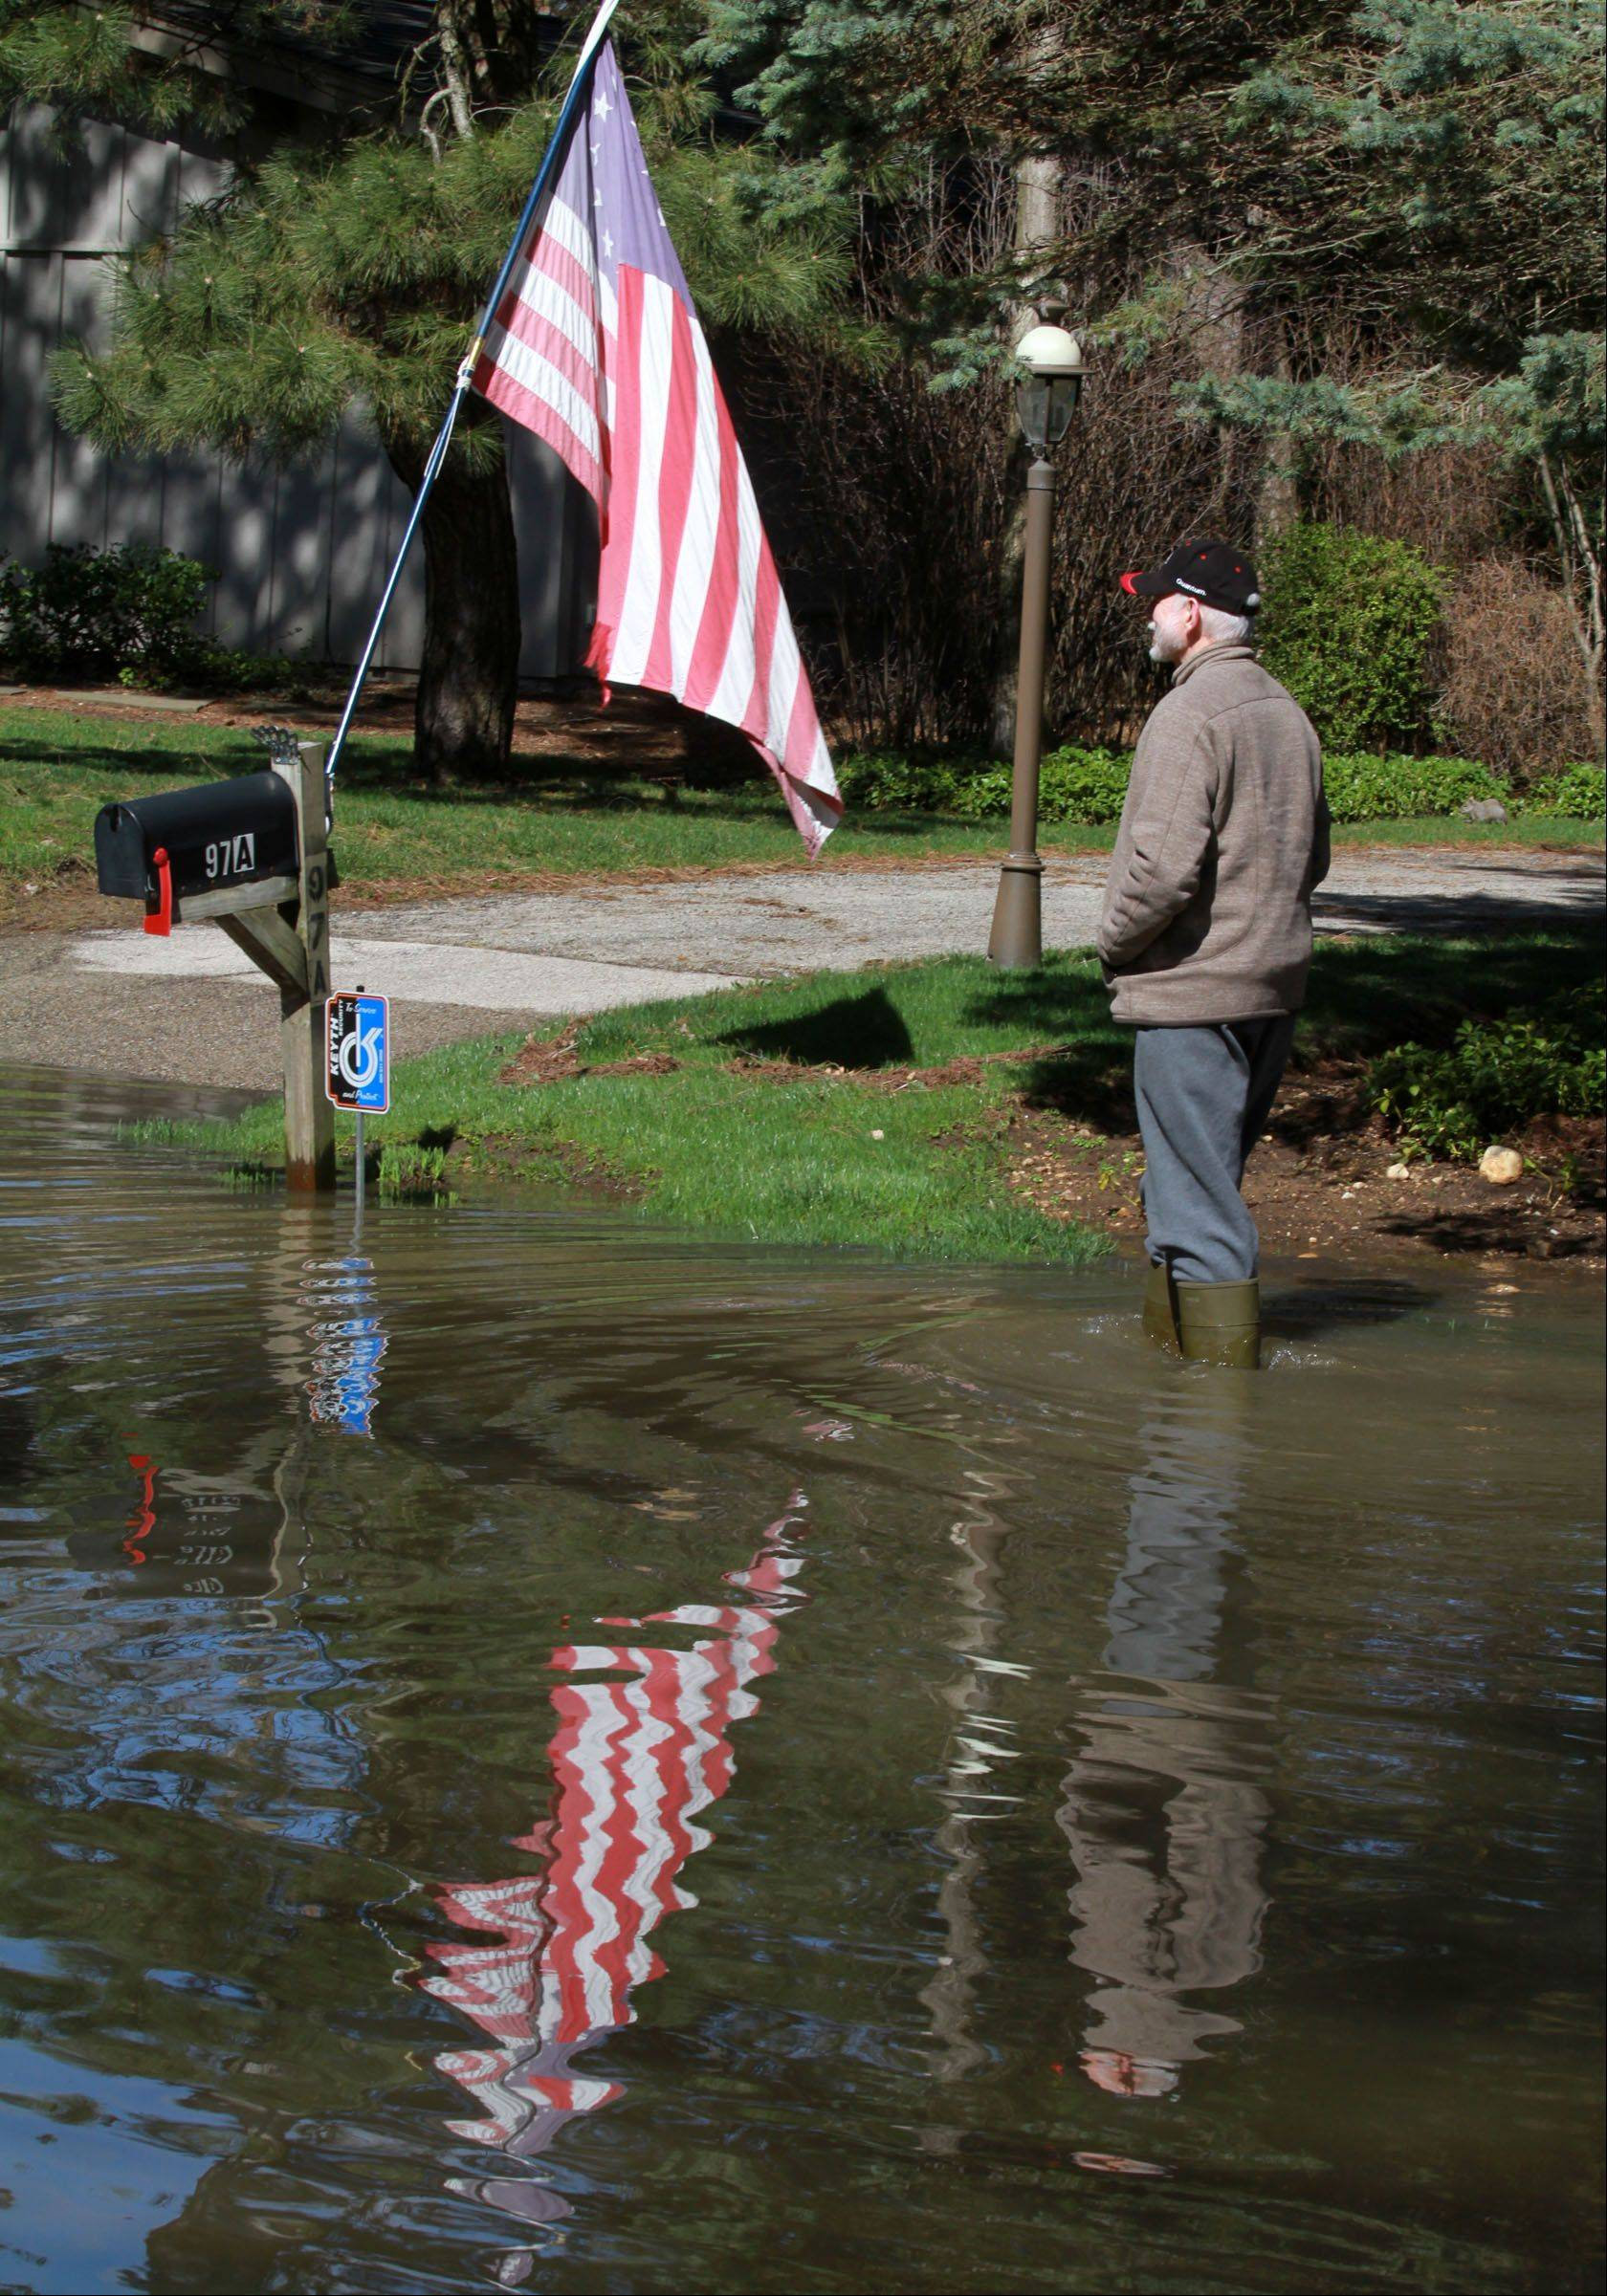 George LeClaire/gleclaire@dailyherald.comRich Sanders walks back to his house on Lincolnshire Way in Lincolnshire after checking the water level at the end of the block and turning back on Saturday, April 20, 2013. Rich said his house did not get any water.